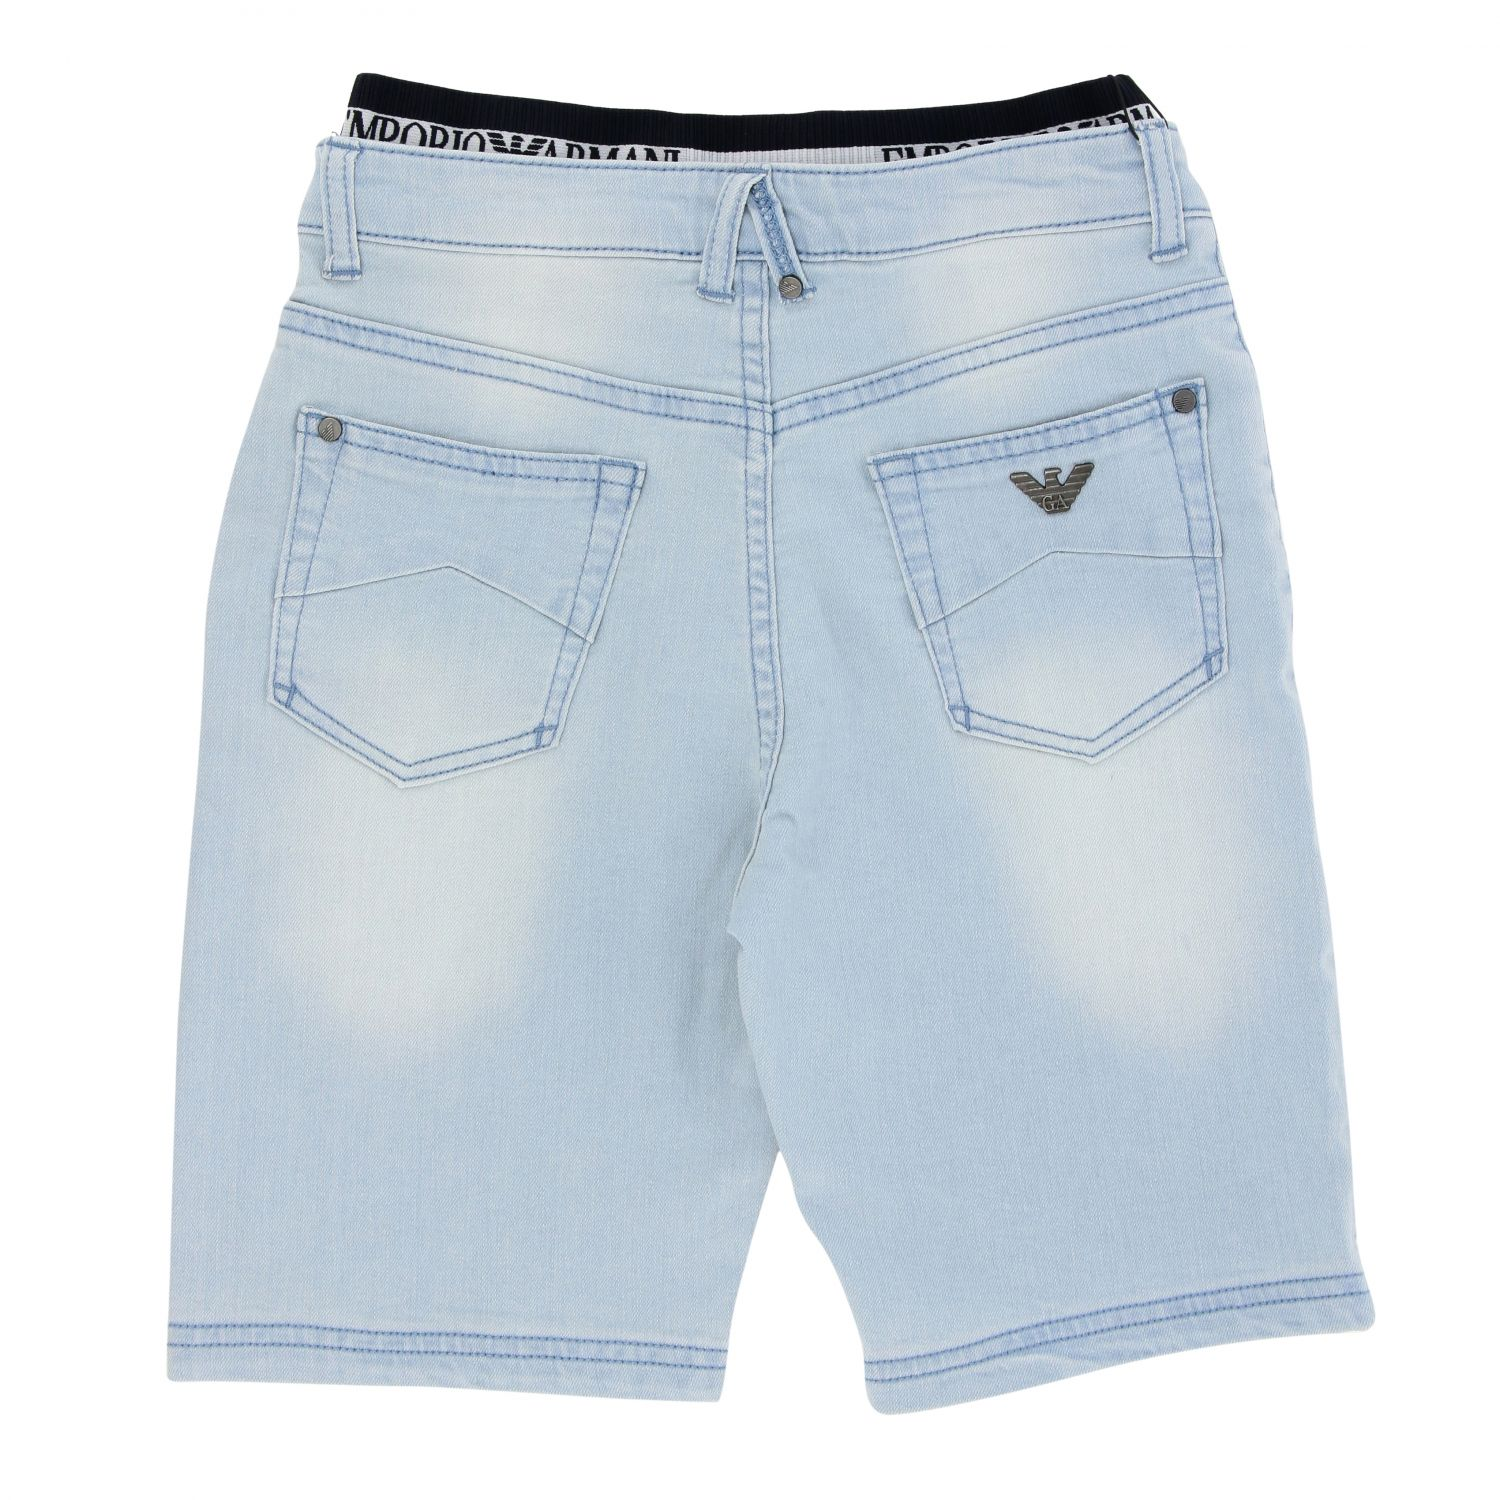 Emporio Armani jeans in used denim with logoed band stone washed 2